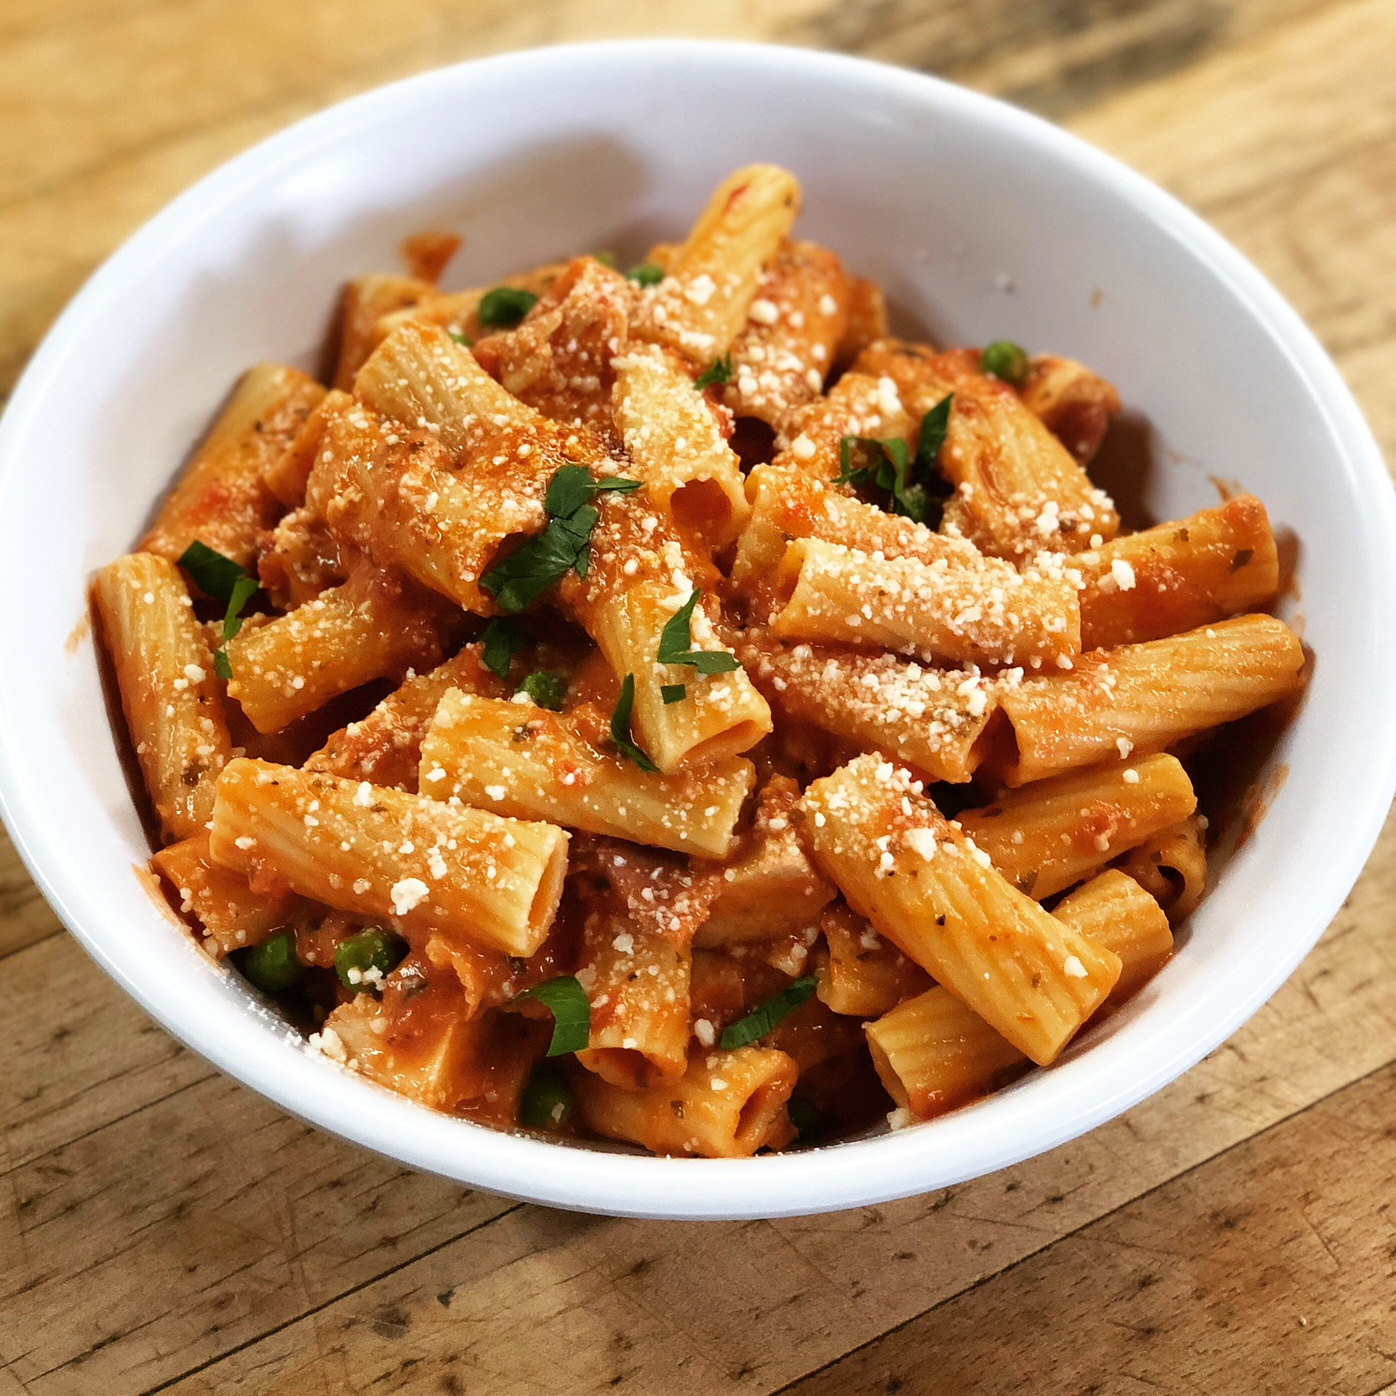 Rigatoni alla Vodka